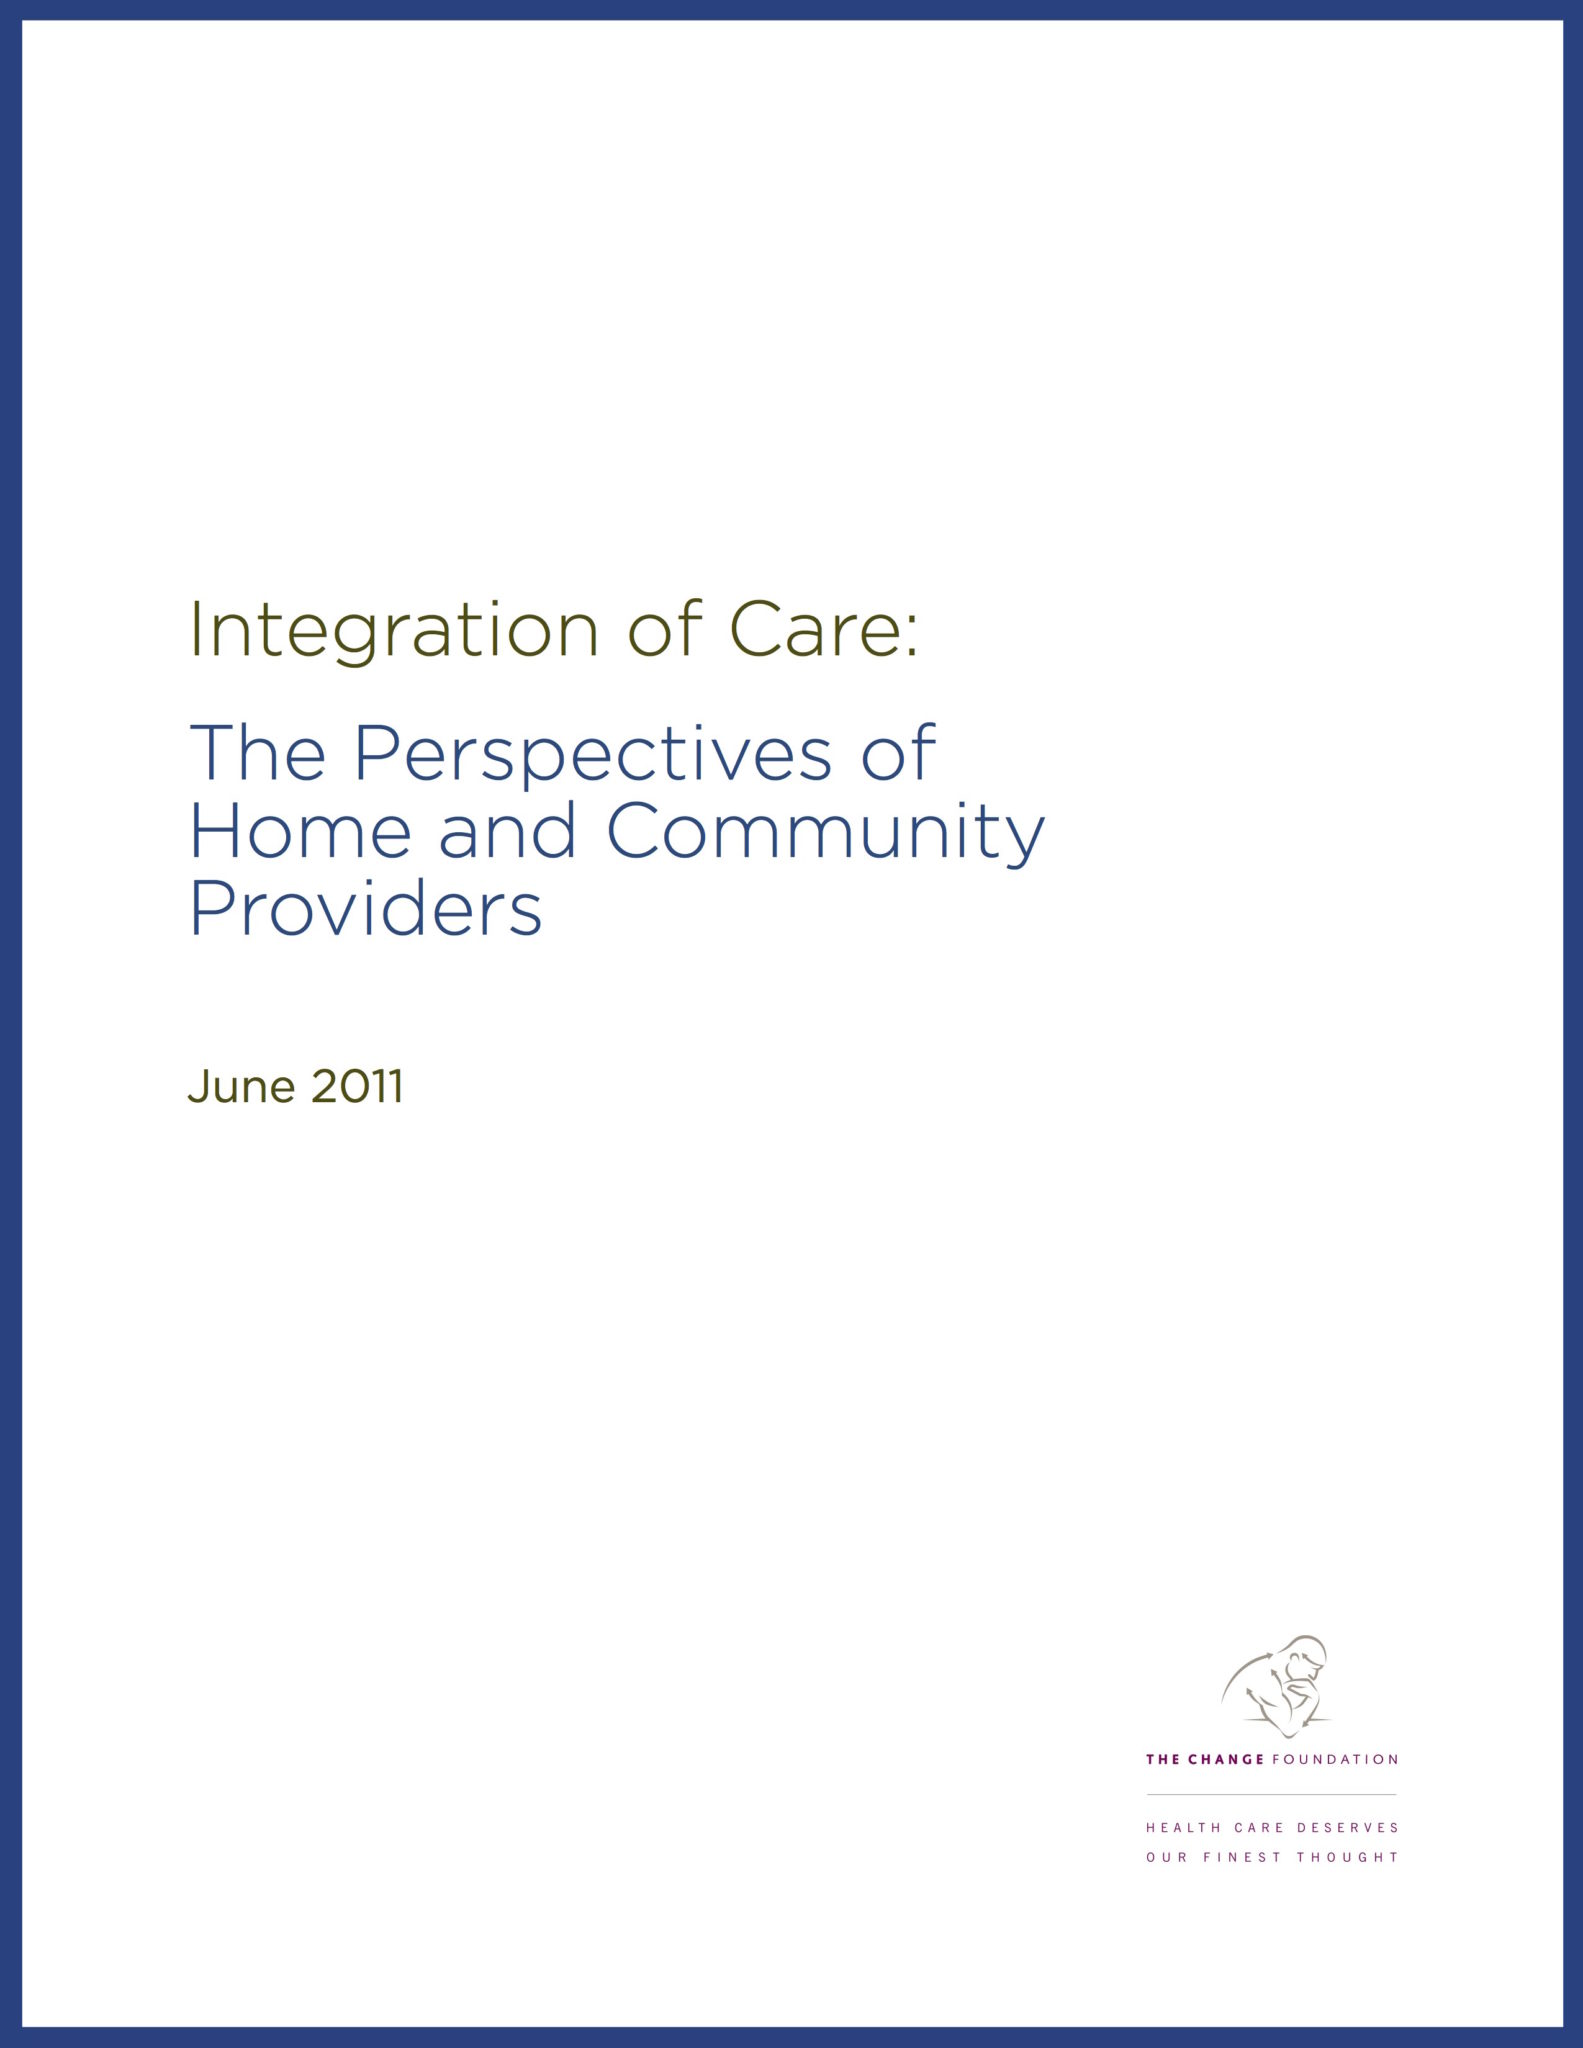 Integration of Care: Perspectives of Home and Community Providers